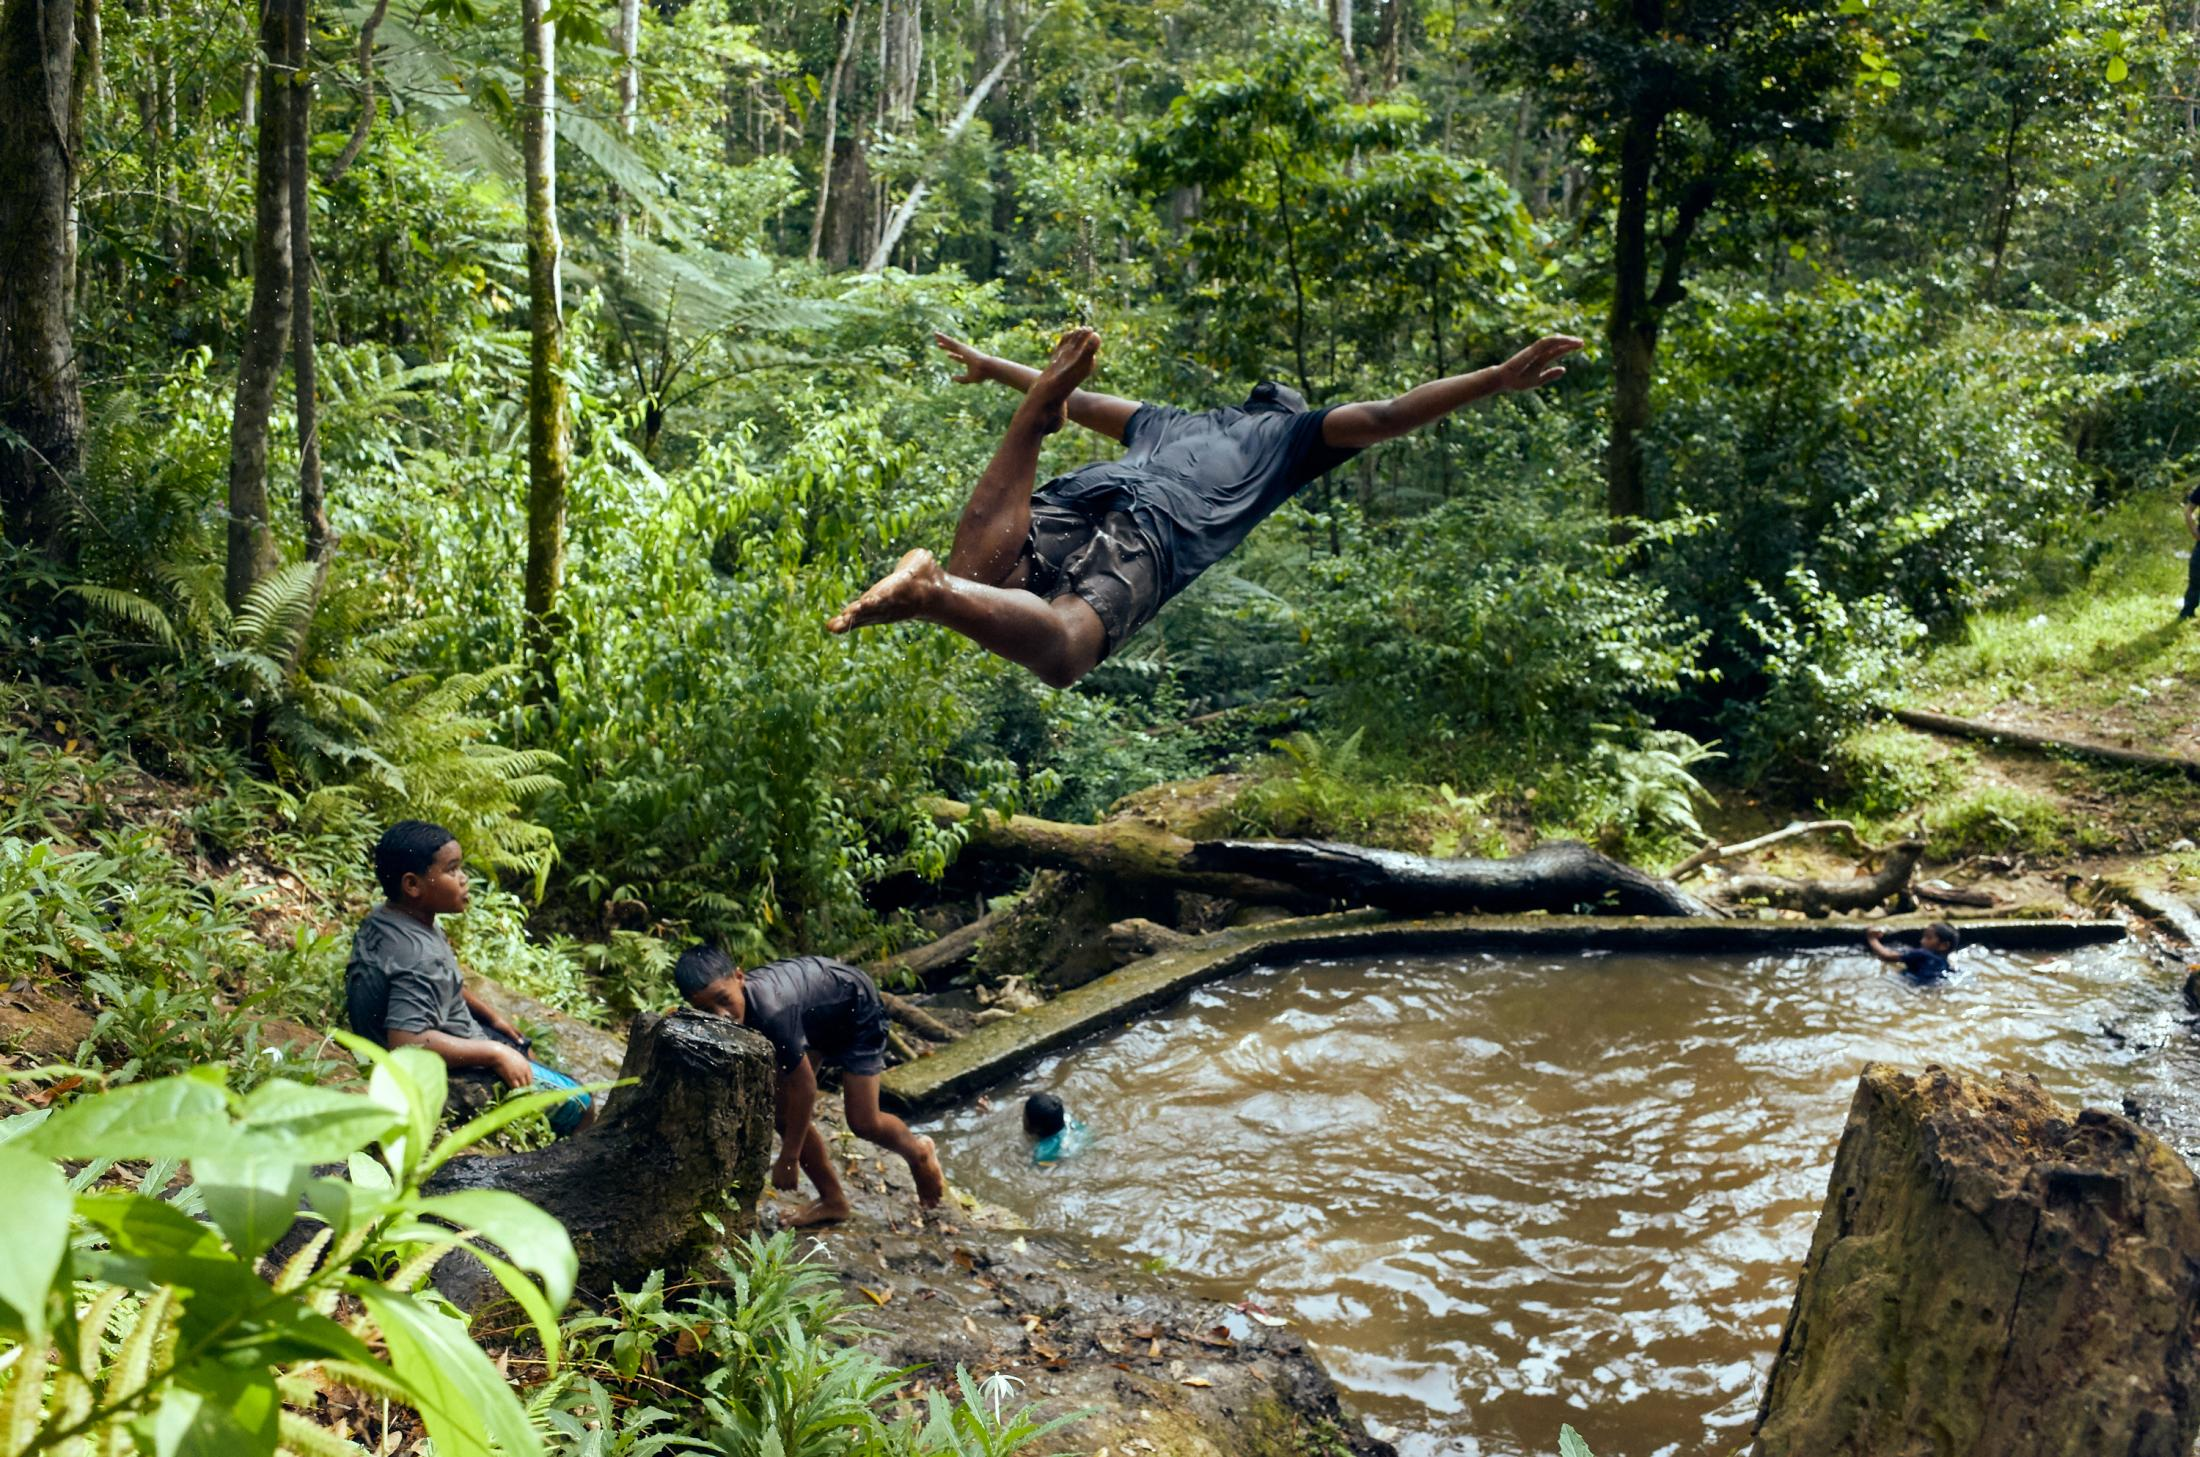 Local youth jumping into a stream on the island of 'Eua. This is the only freshwater tributary in the entire Kingdom of Tonga.